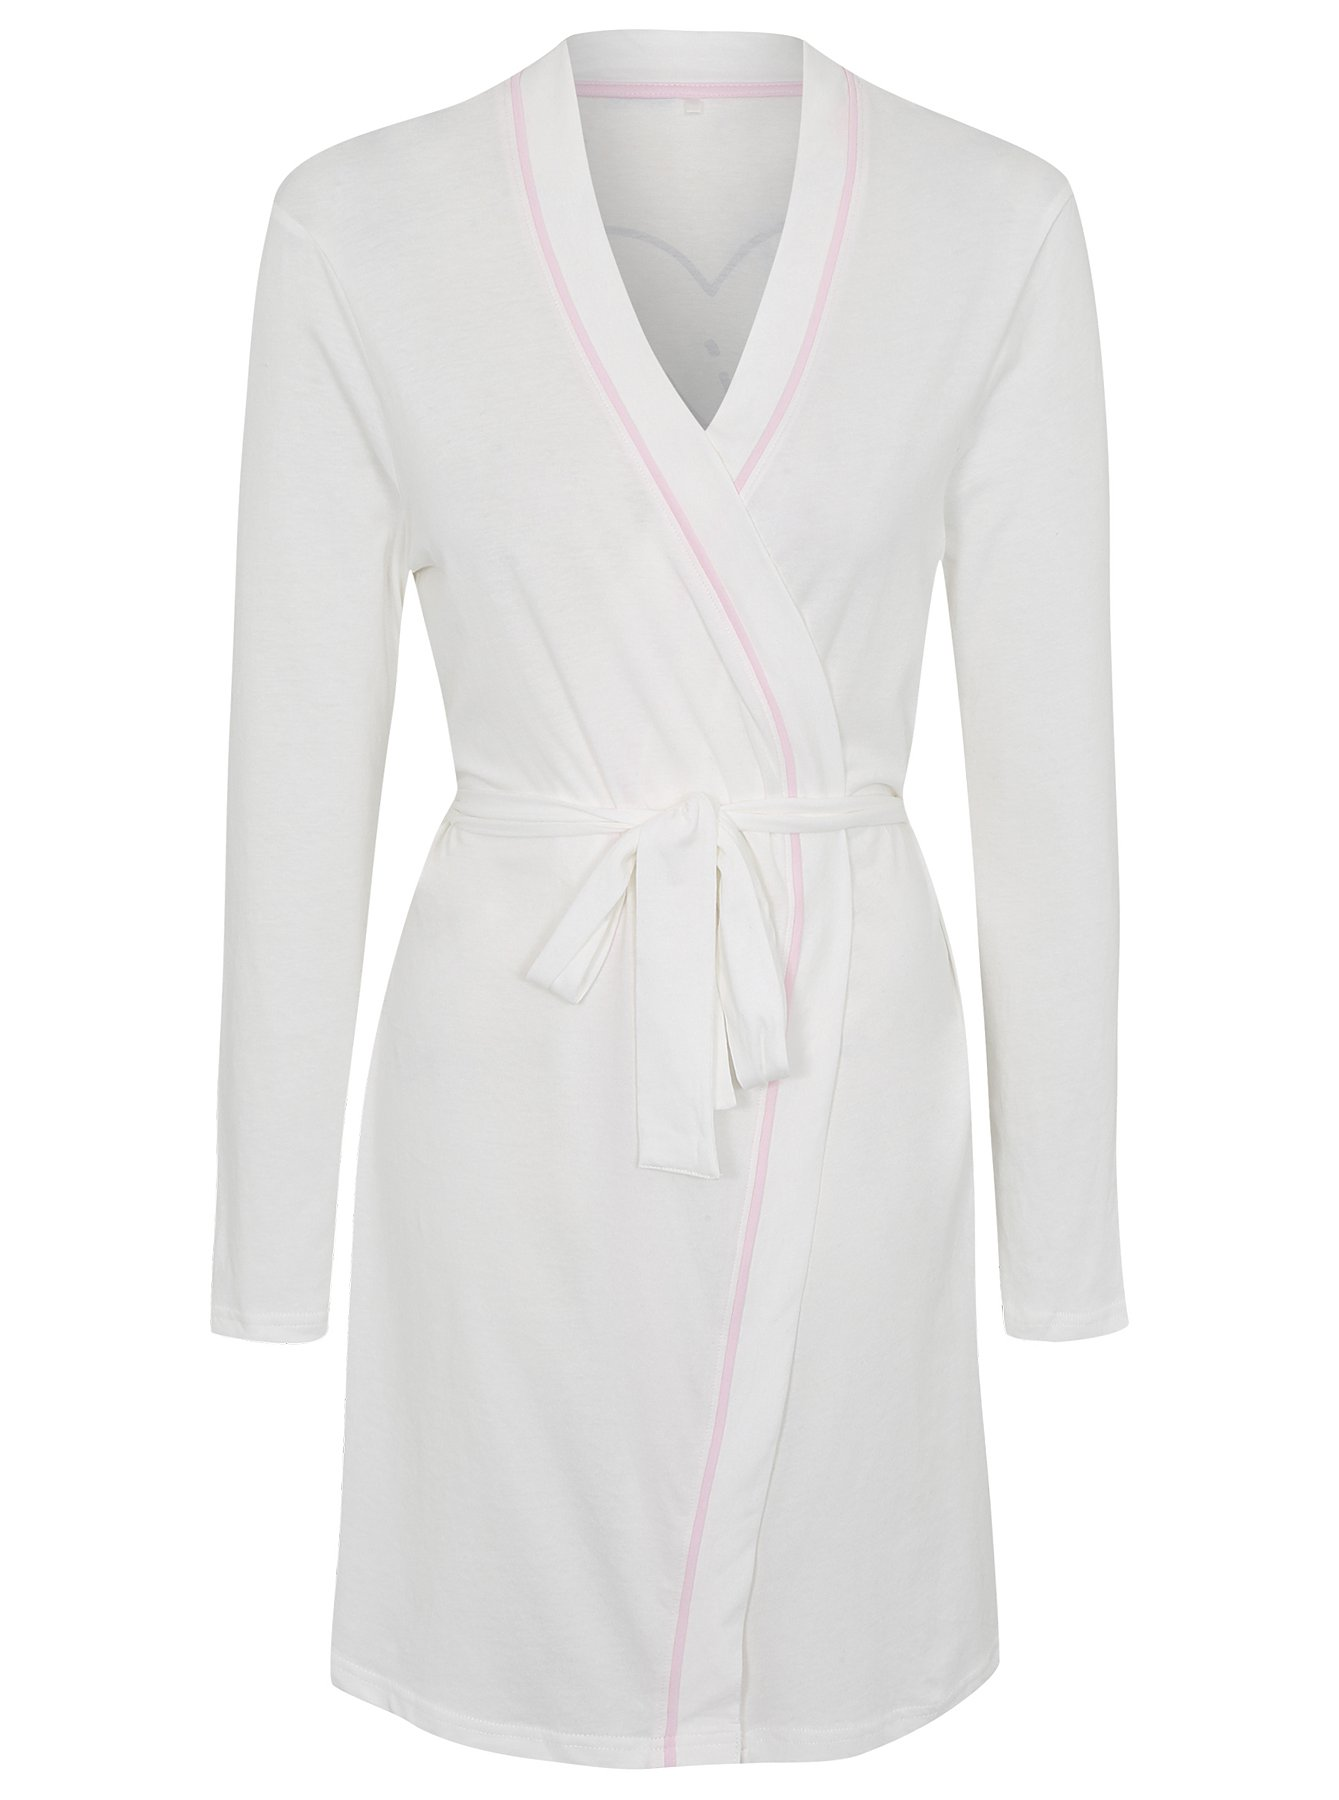 Enchanting Boys Dressing Gowns Asda Image - Wedding and flowers ...